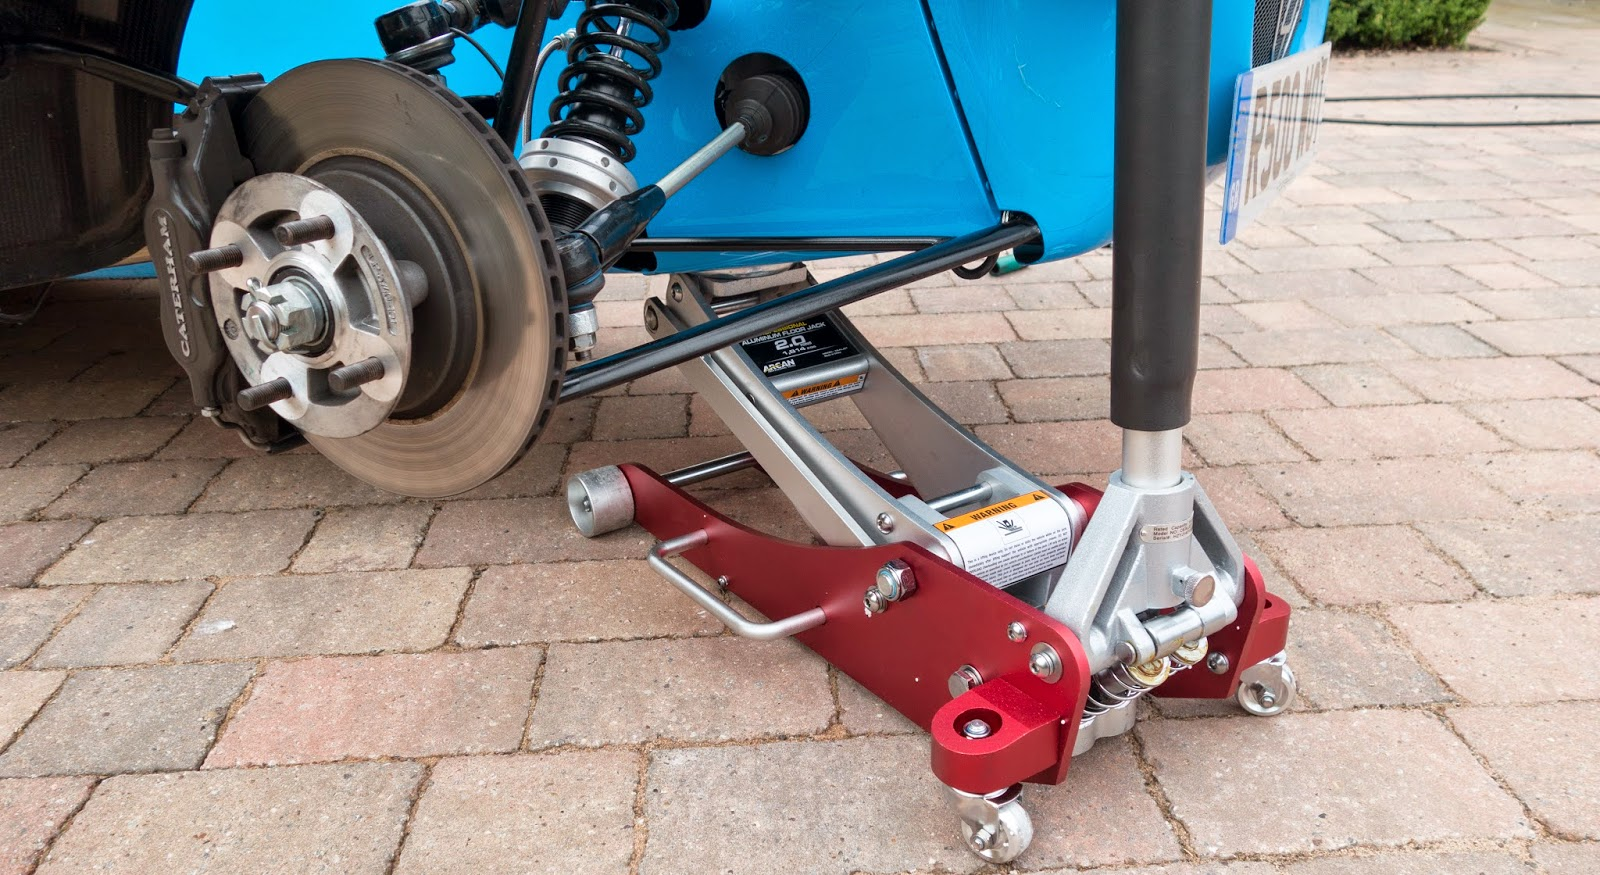 Arcan 2 tonne trolley jack in action